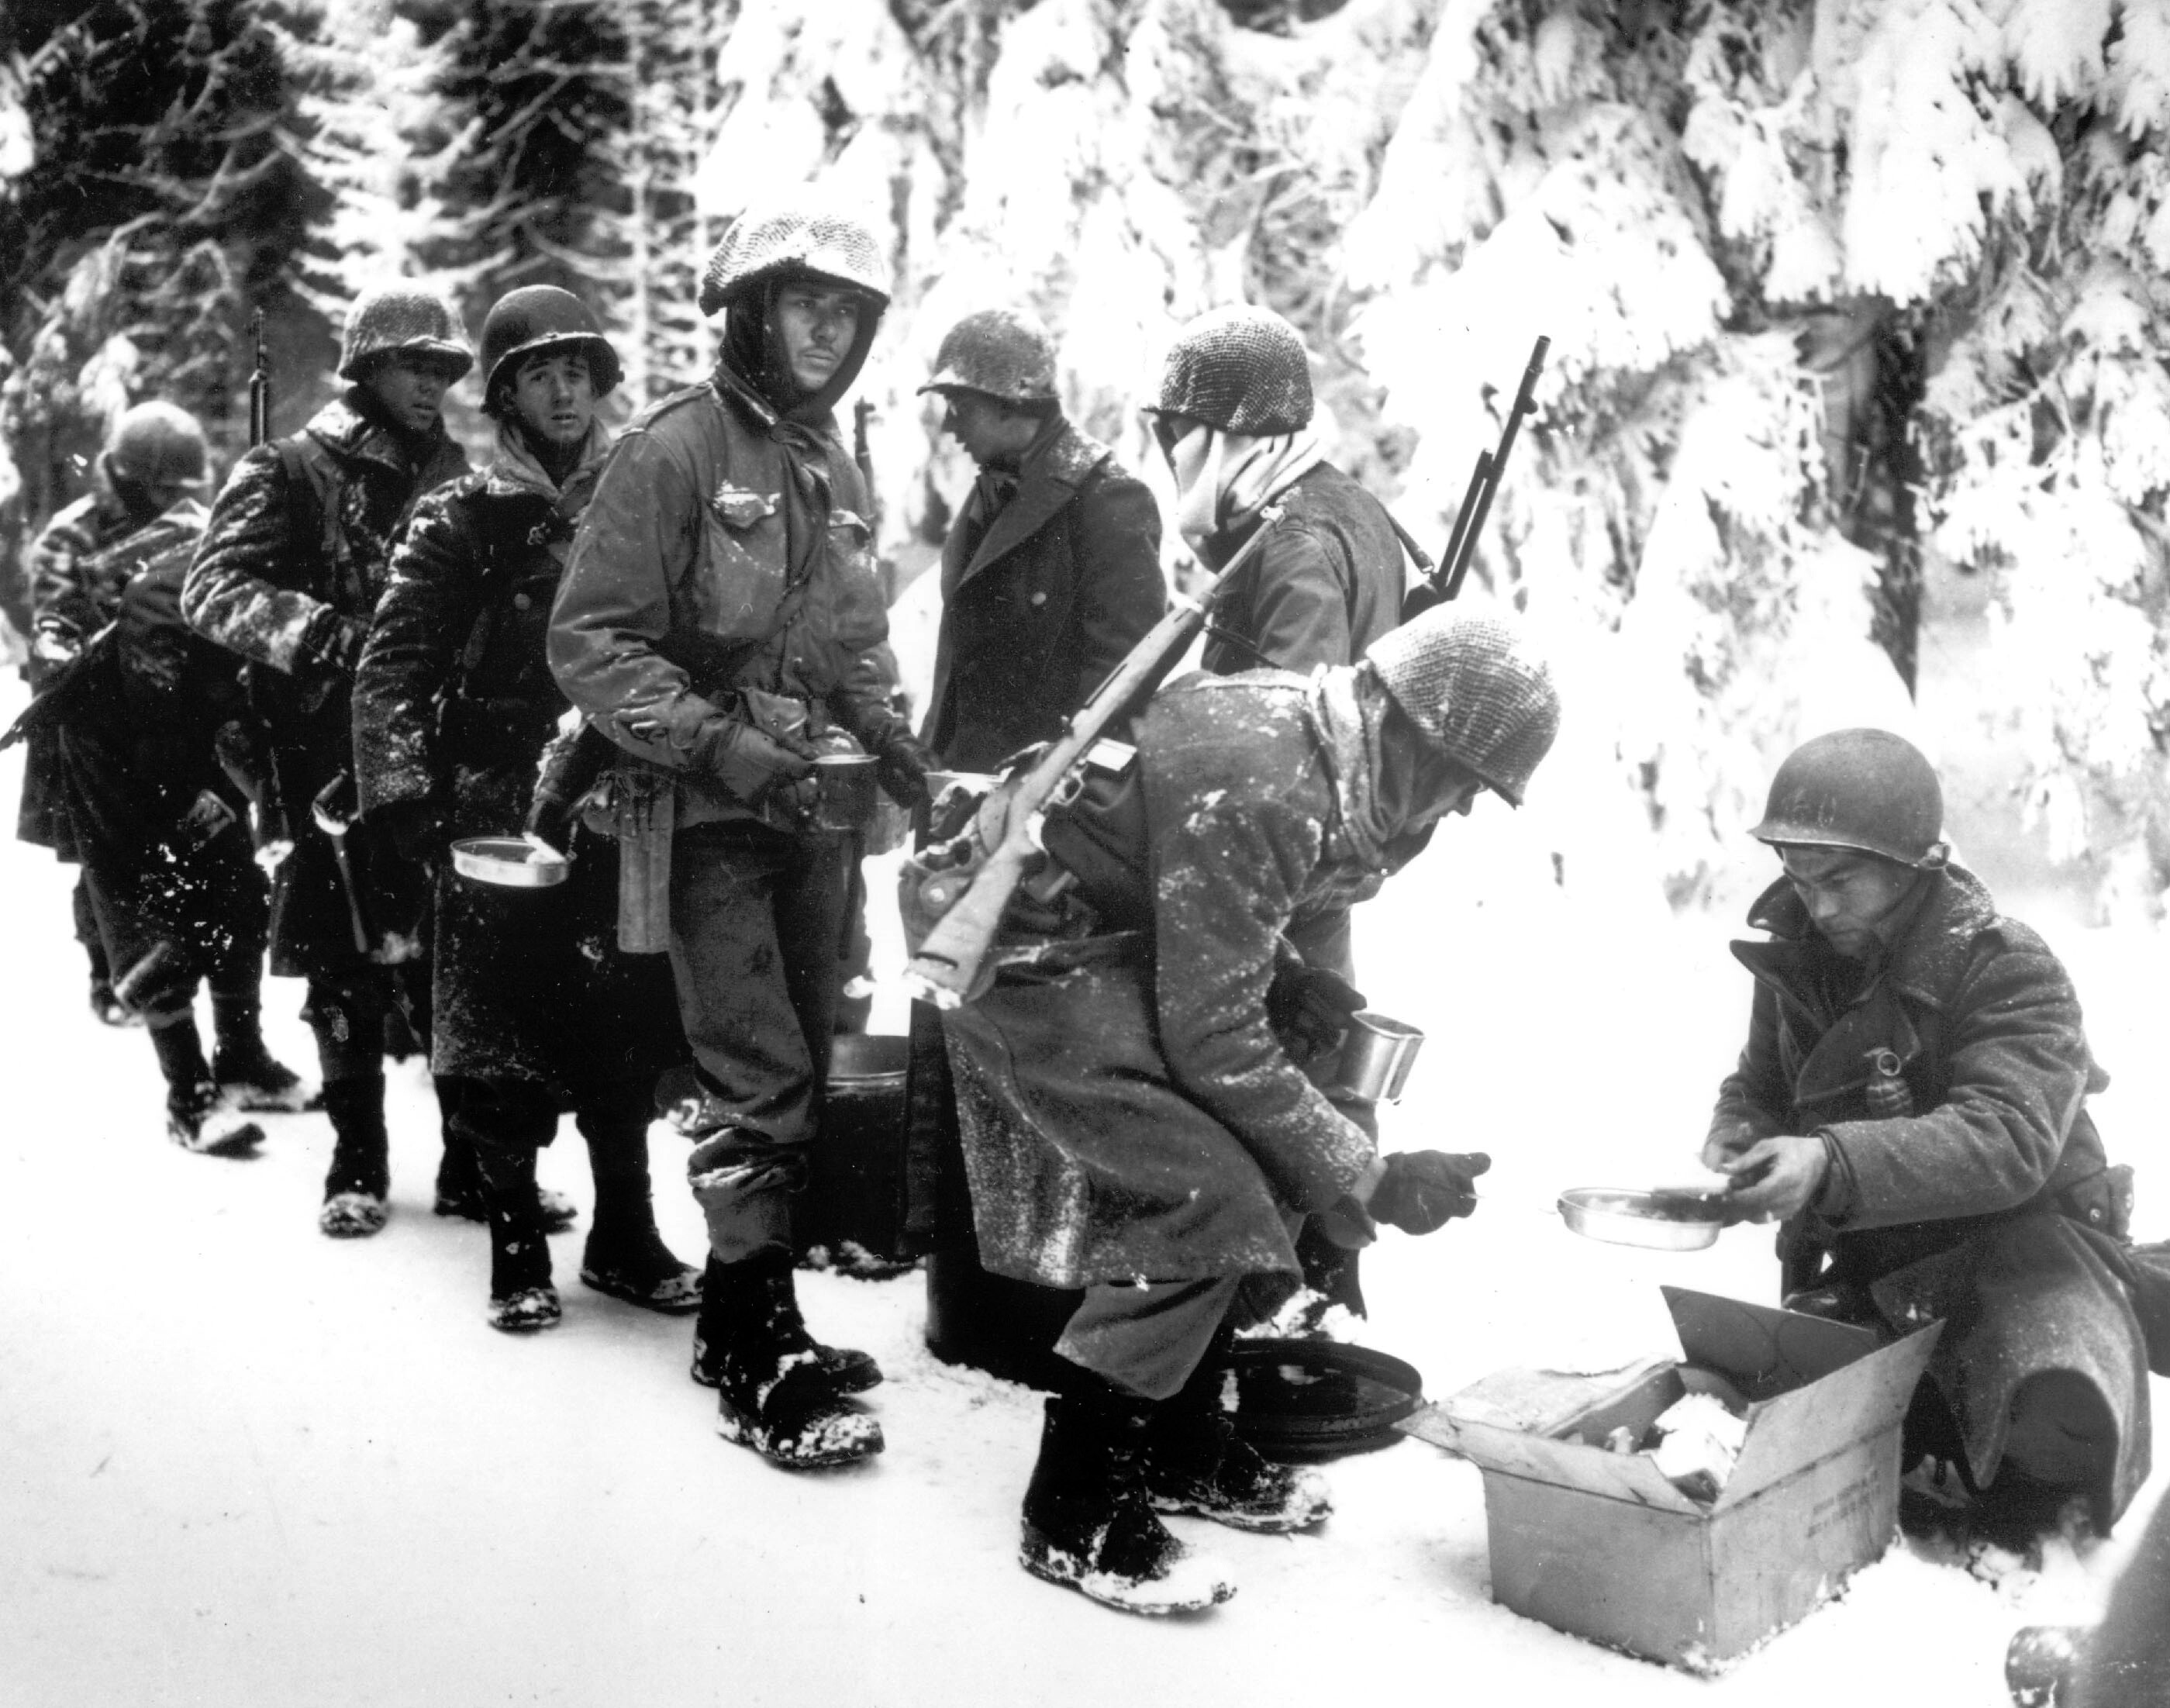 Westlake Legal Group BattleoftheBulge2 Walter Borneman: Battle of the Bulge -- waged on victory's doorstep -- proved WWII wasn't over yet Walter R. Borneman fox-news/world/world-regions/europe fox-news/us/personal-freedoms/proud-american fox-news/us/military fox-news/topic/world-war-two fox-news/opinion fox news fnc/opinion fnc article 1f81735c-a2be-5a2e-a3b7-0c400c03f317